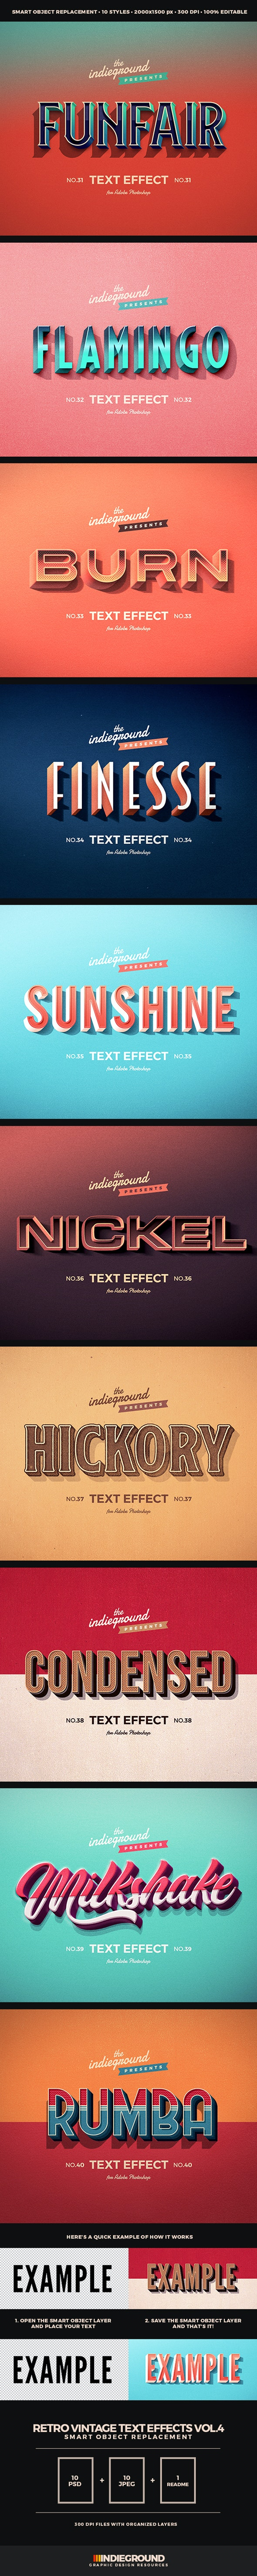 Retro Vintage Text Effects Vol. 4 - Text Effects Actions